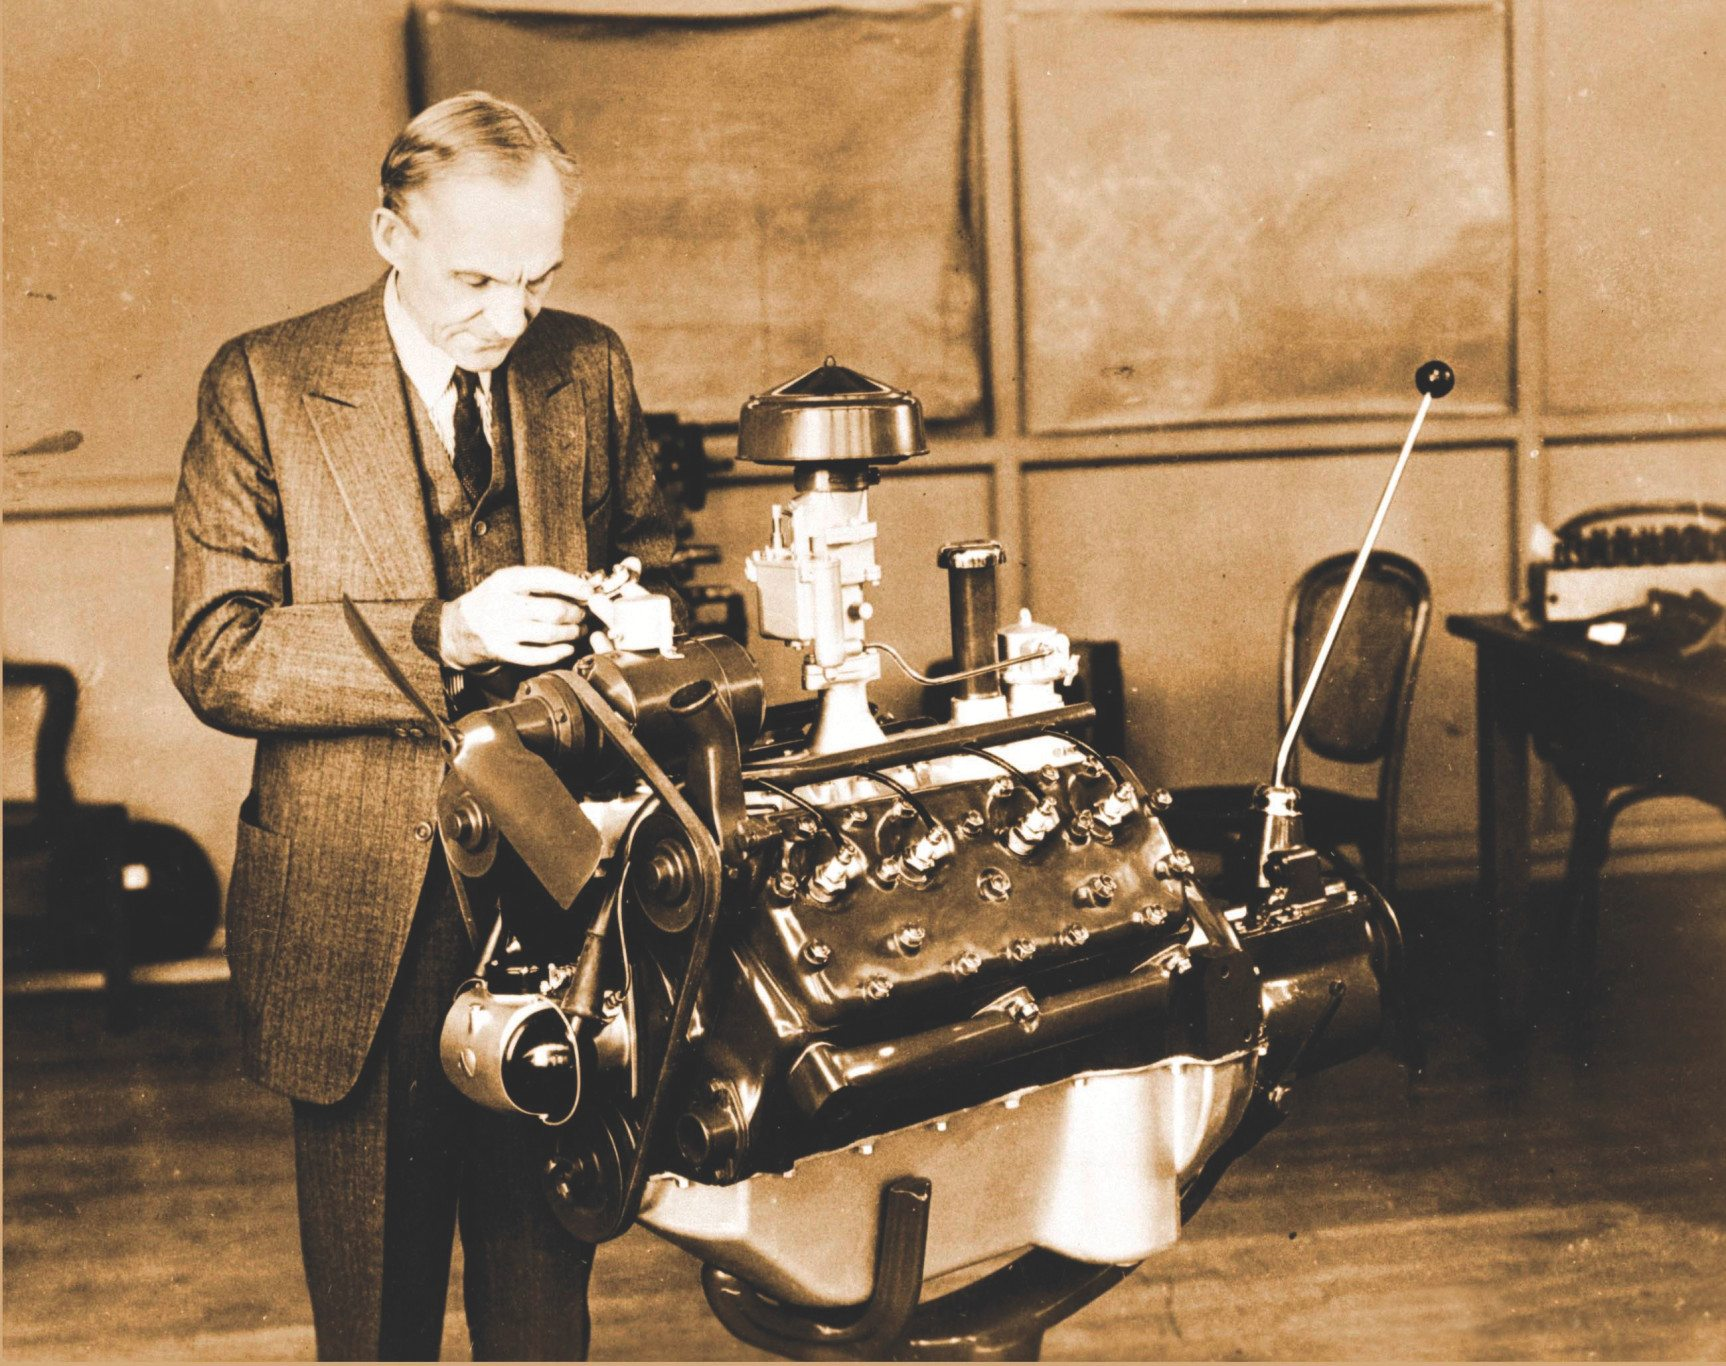 Henry Ford and his 1932 flathead v8